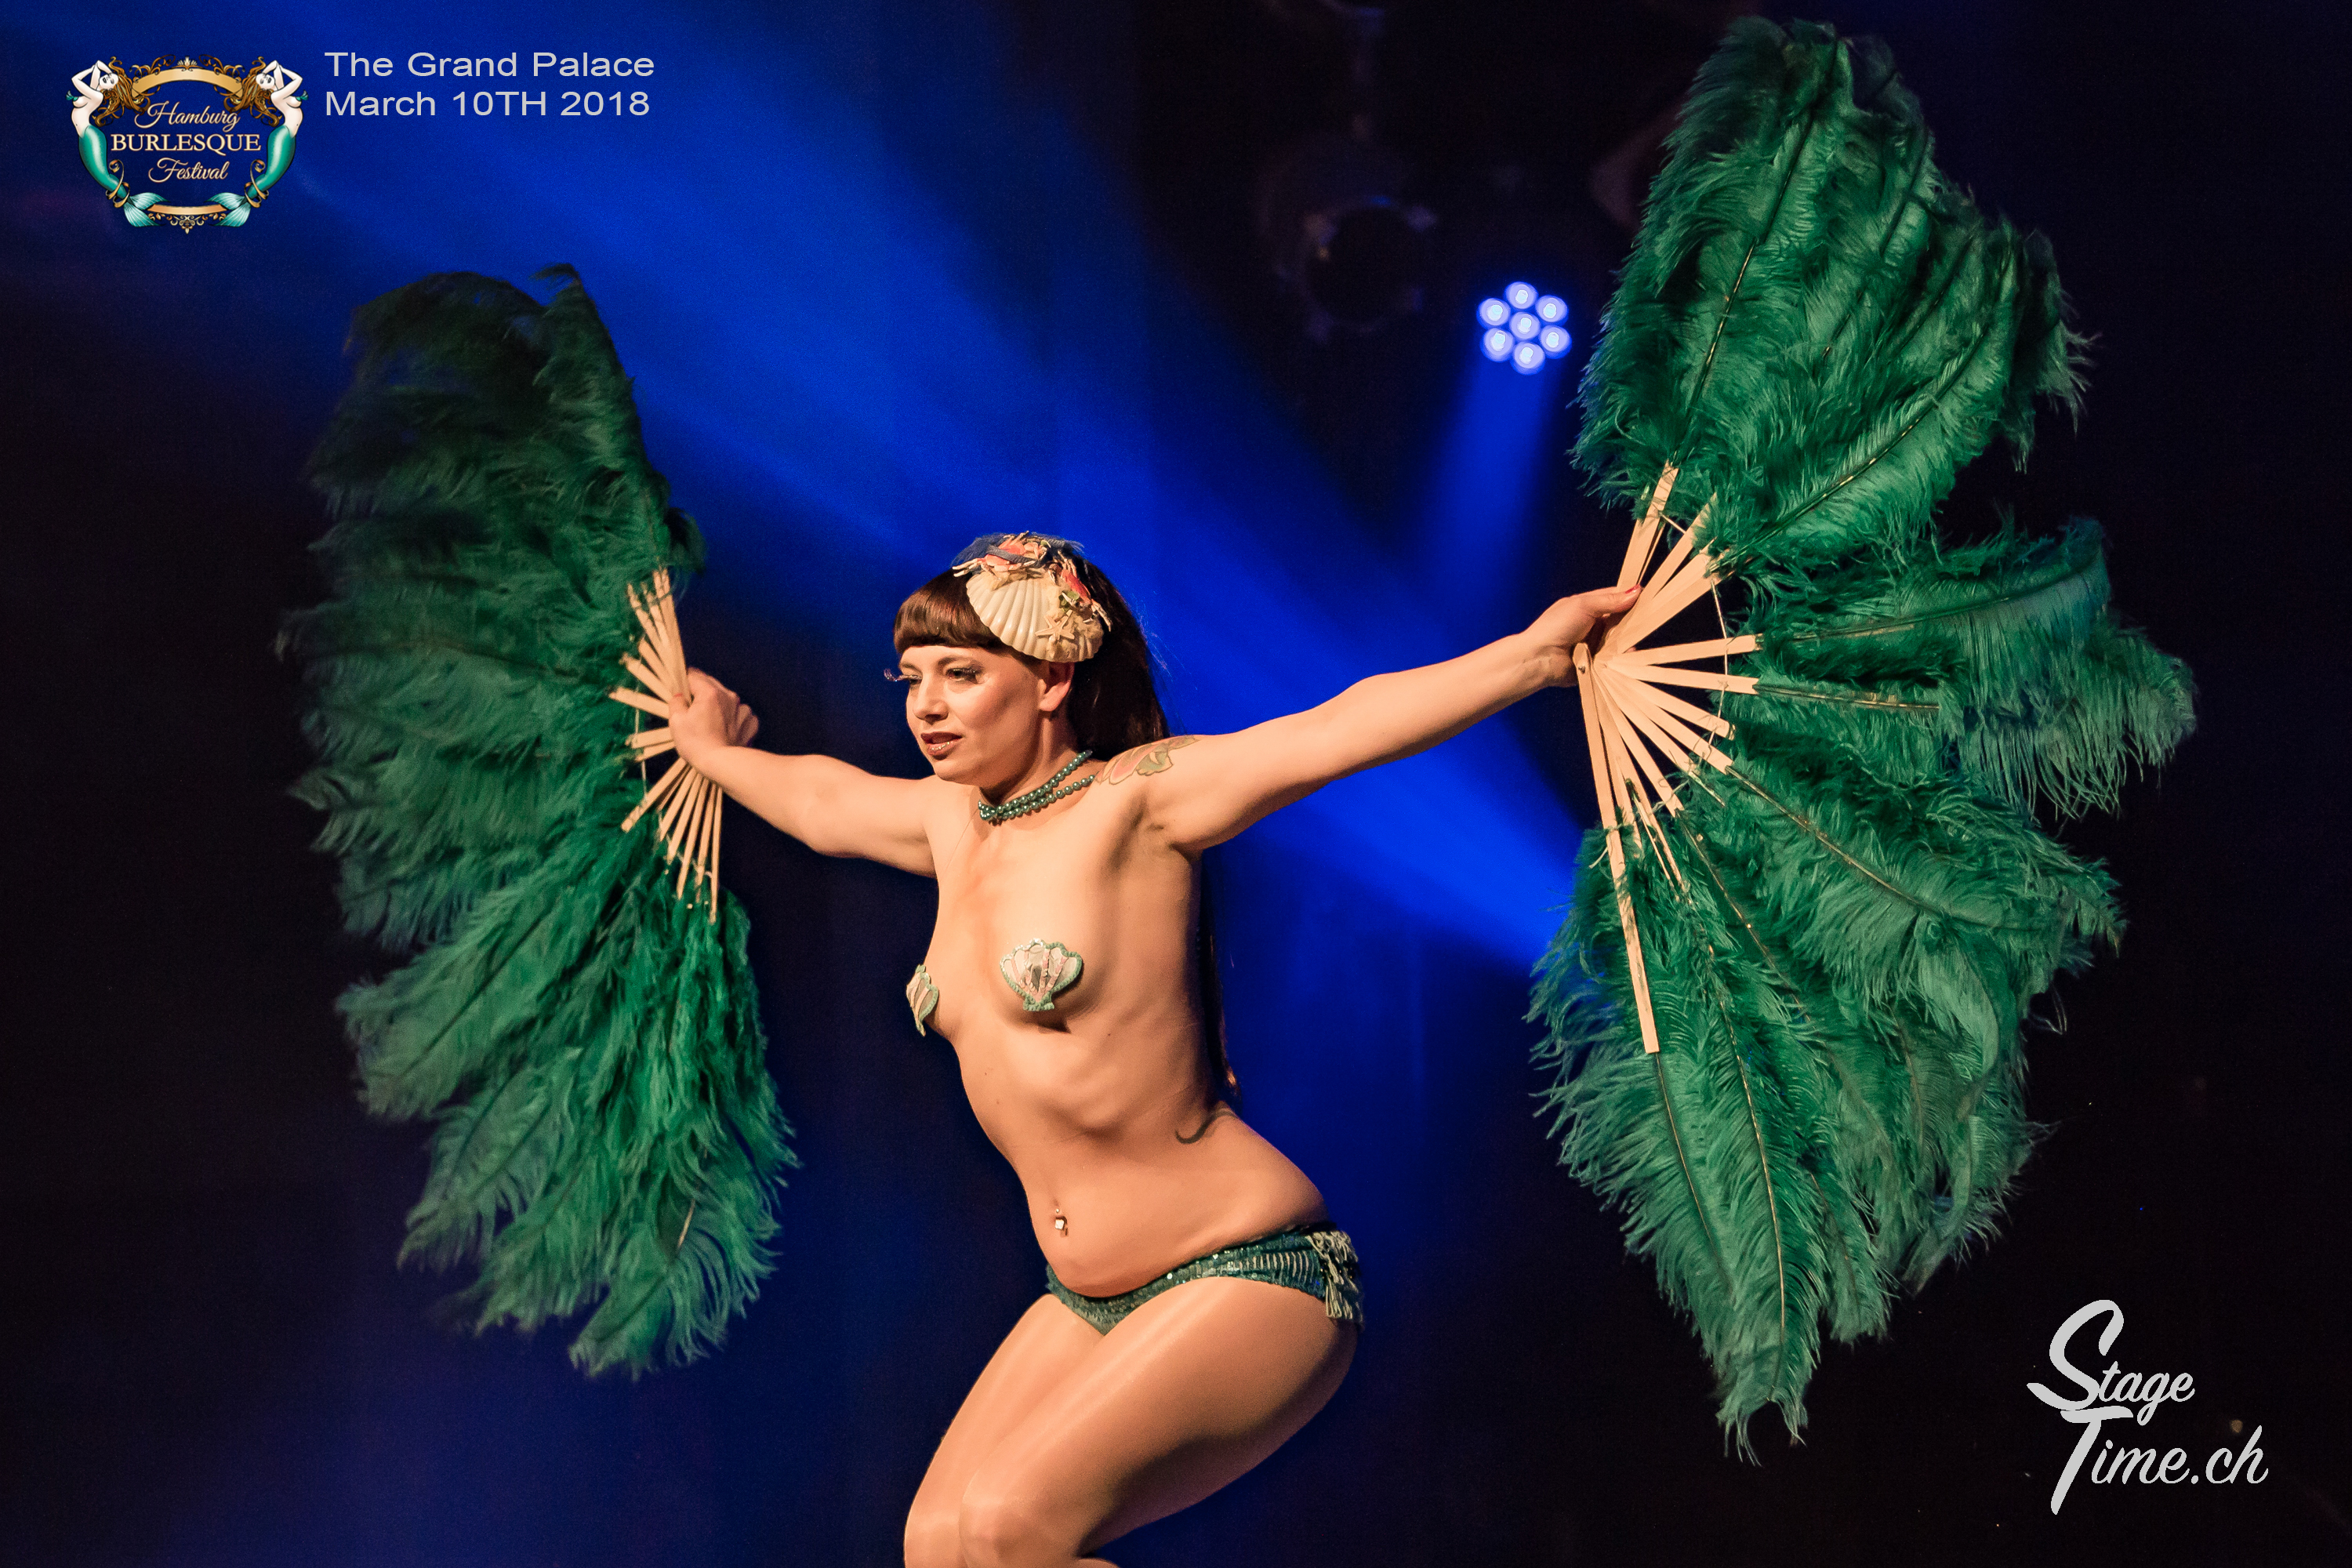 Hamburg_Burlesque_Festival_The_Grand_Palace__📷_Christoph_Gurtner_I_stagetime.ch-37